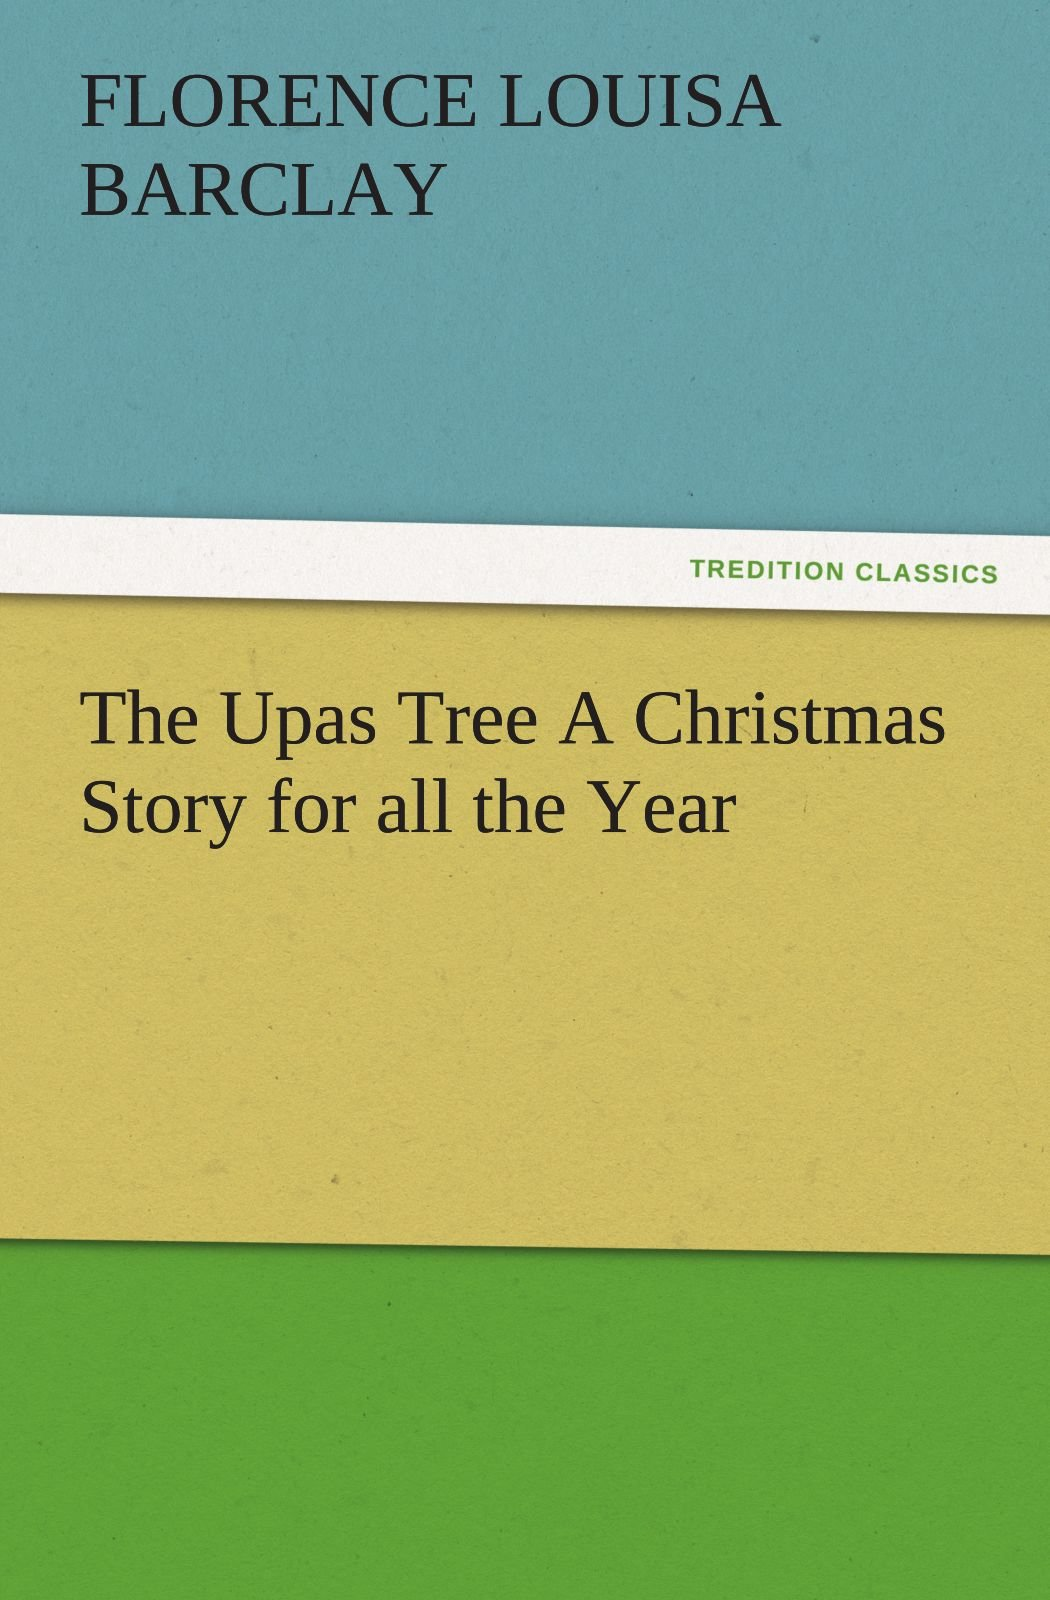 The Upas Tree A Christmas Story for all the Year (TREDITION CLASSICS) pdf